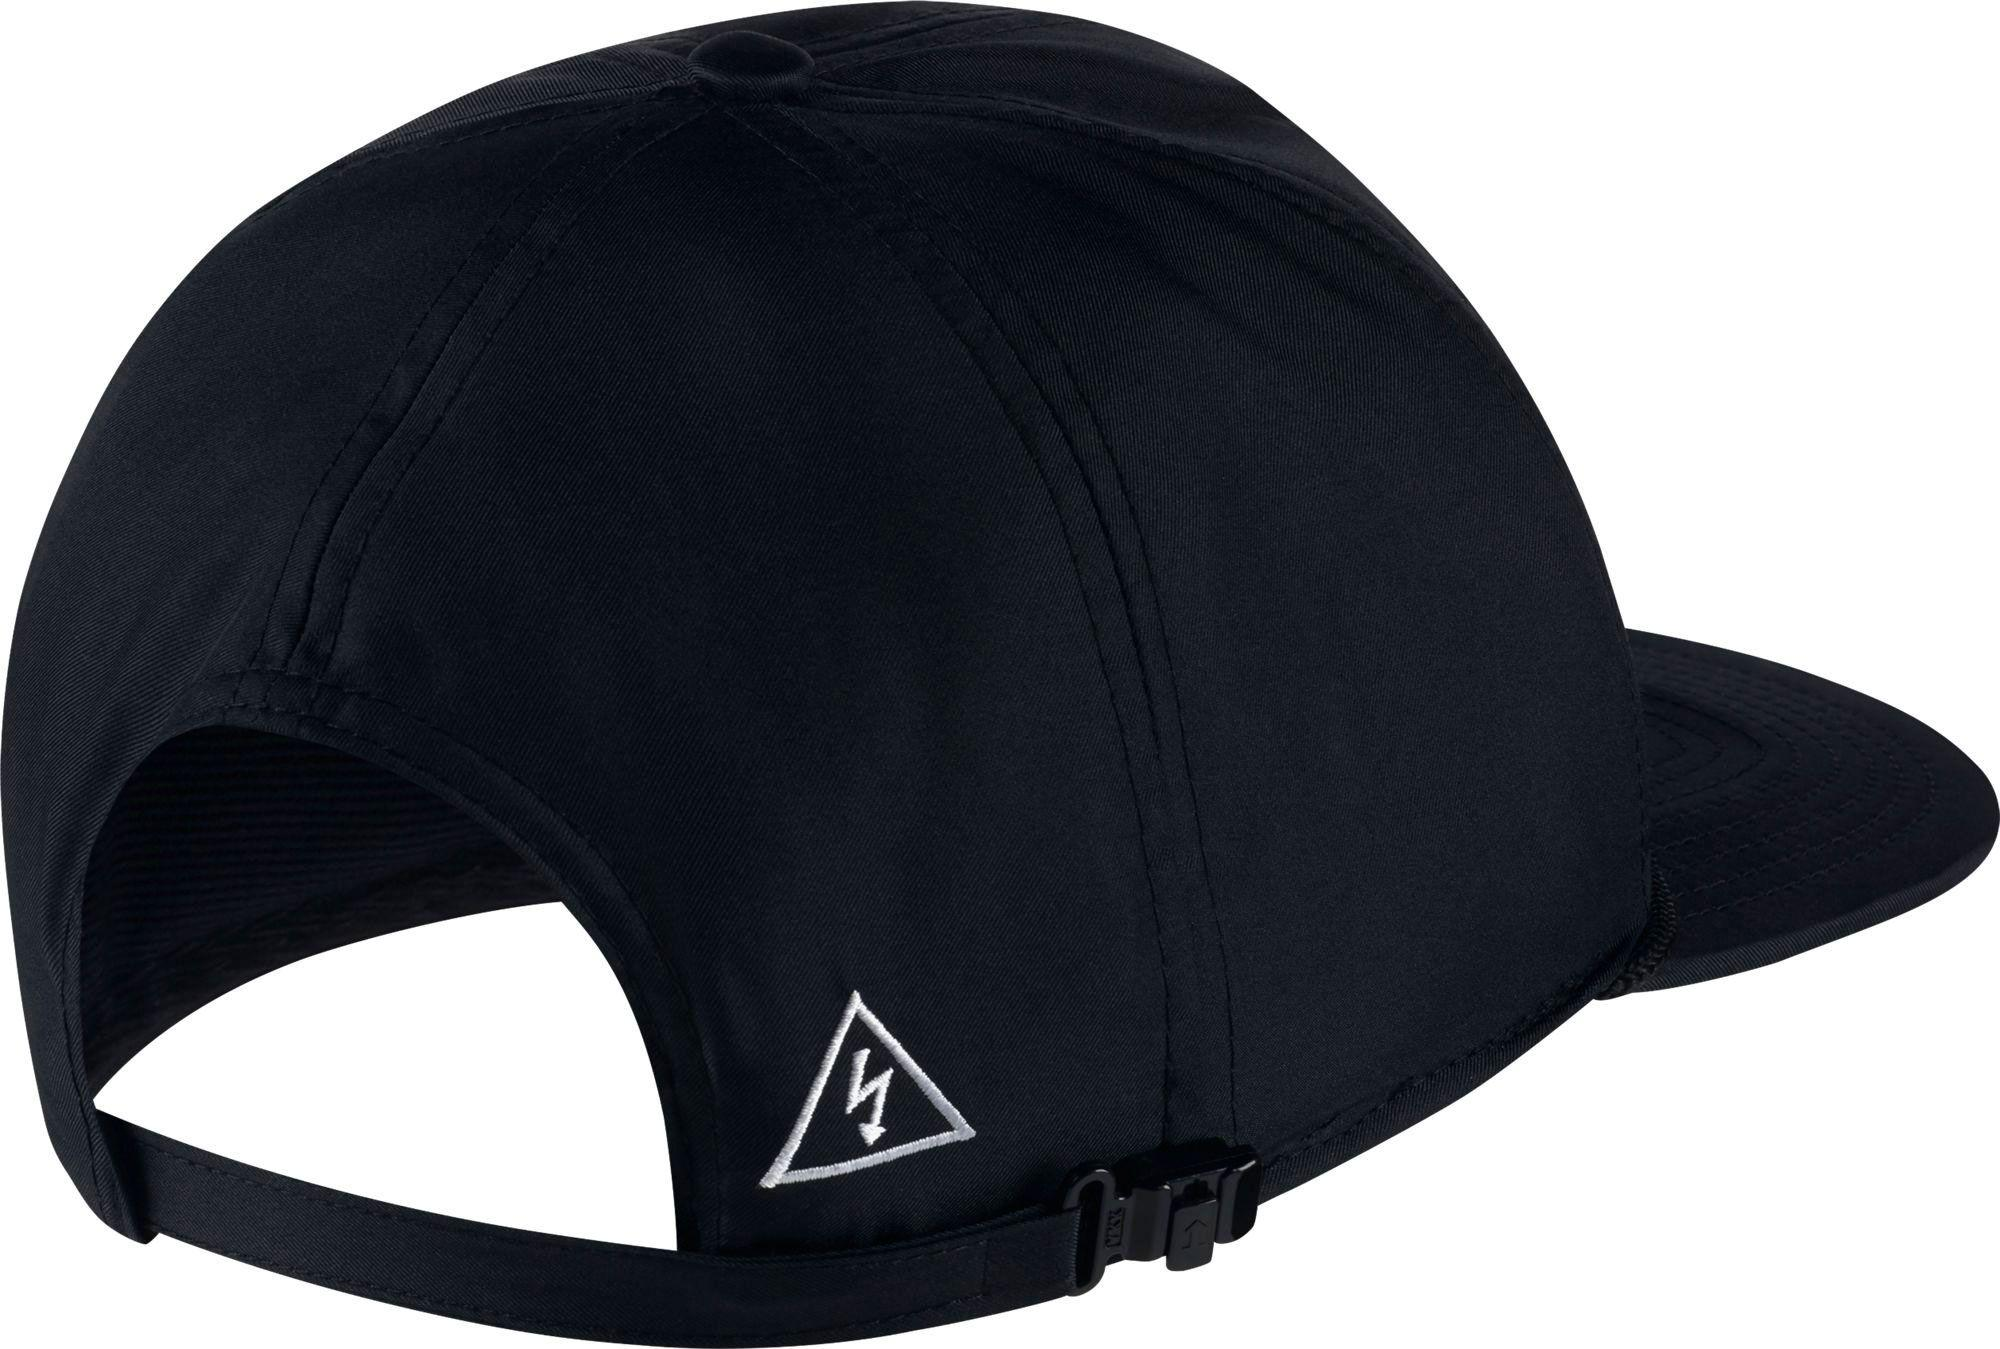 ... irving take notes true hat snapback  Lyst - Nike Kyrie Aerobill Dri-fit  Zipback Hat in Black for ... 34c5bd9b30e4